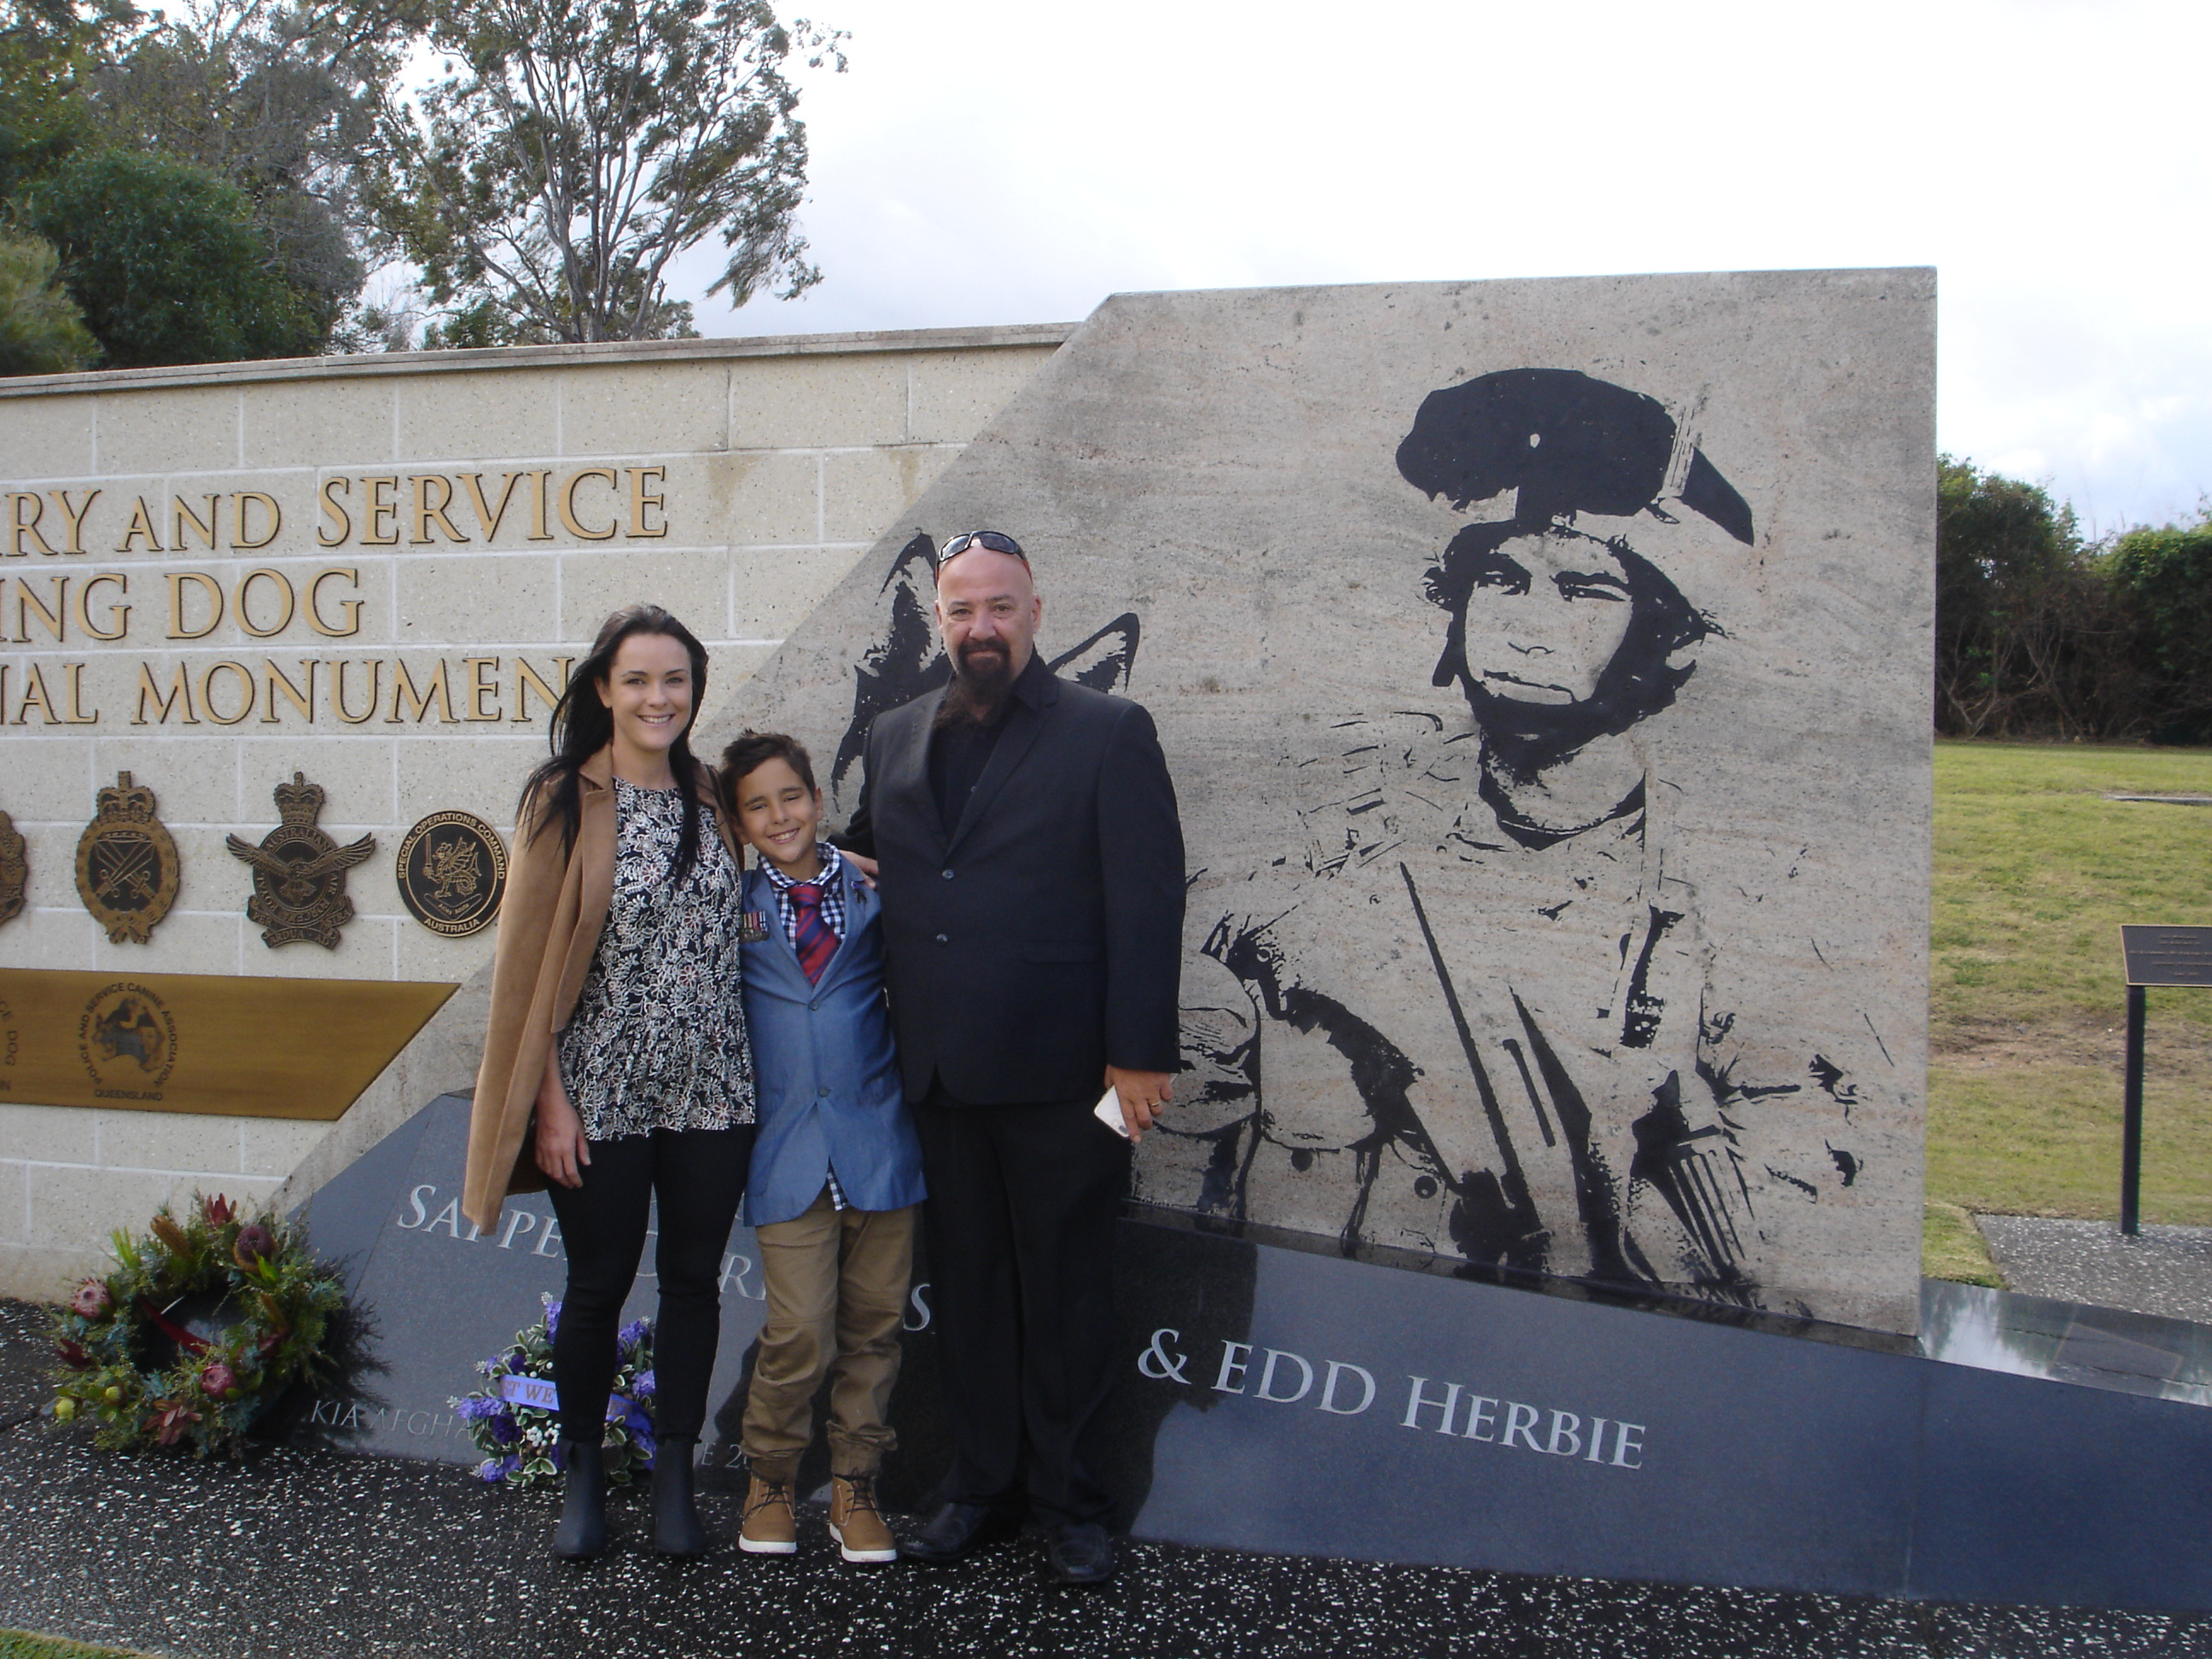 Angela, Mason and Graeme Smith at the monument 7 June 2018.